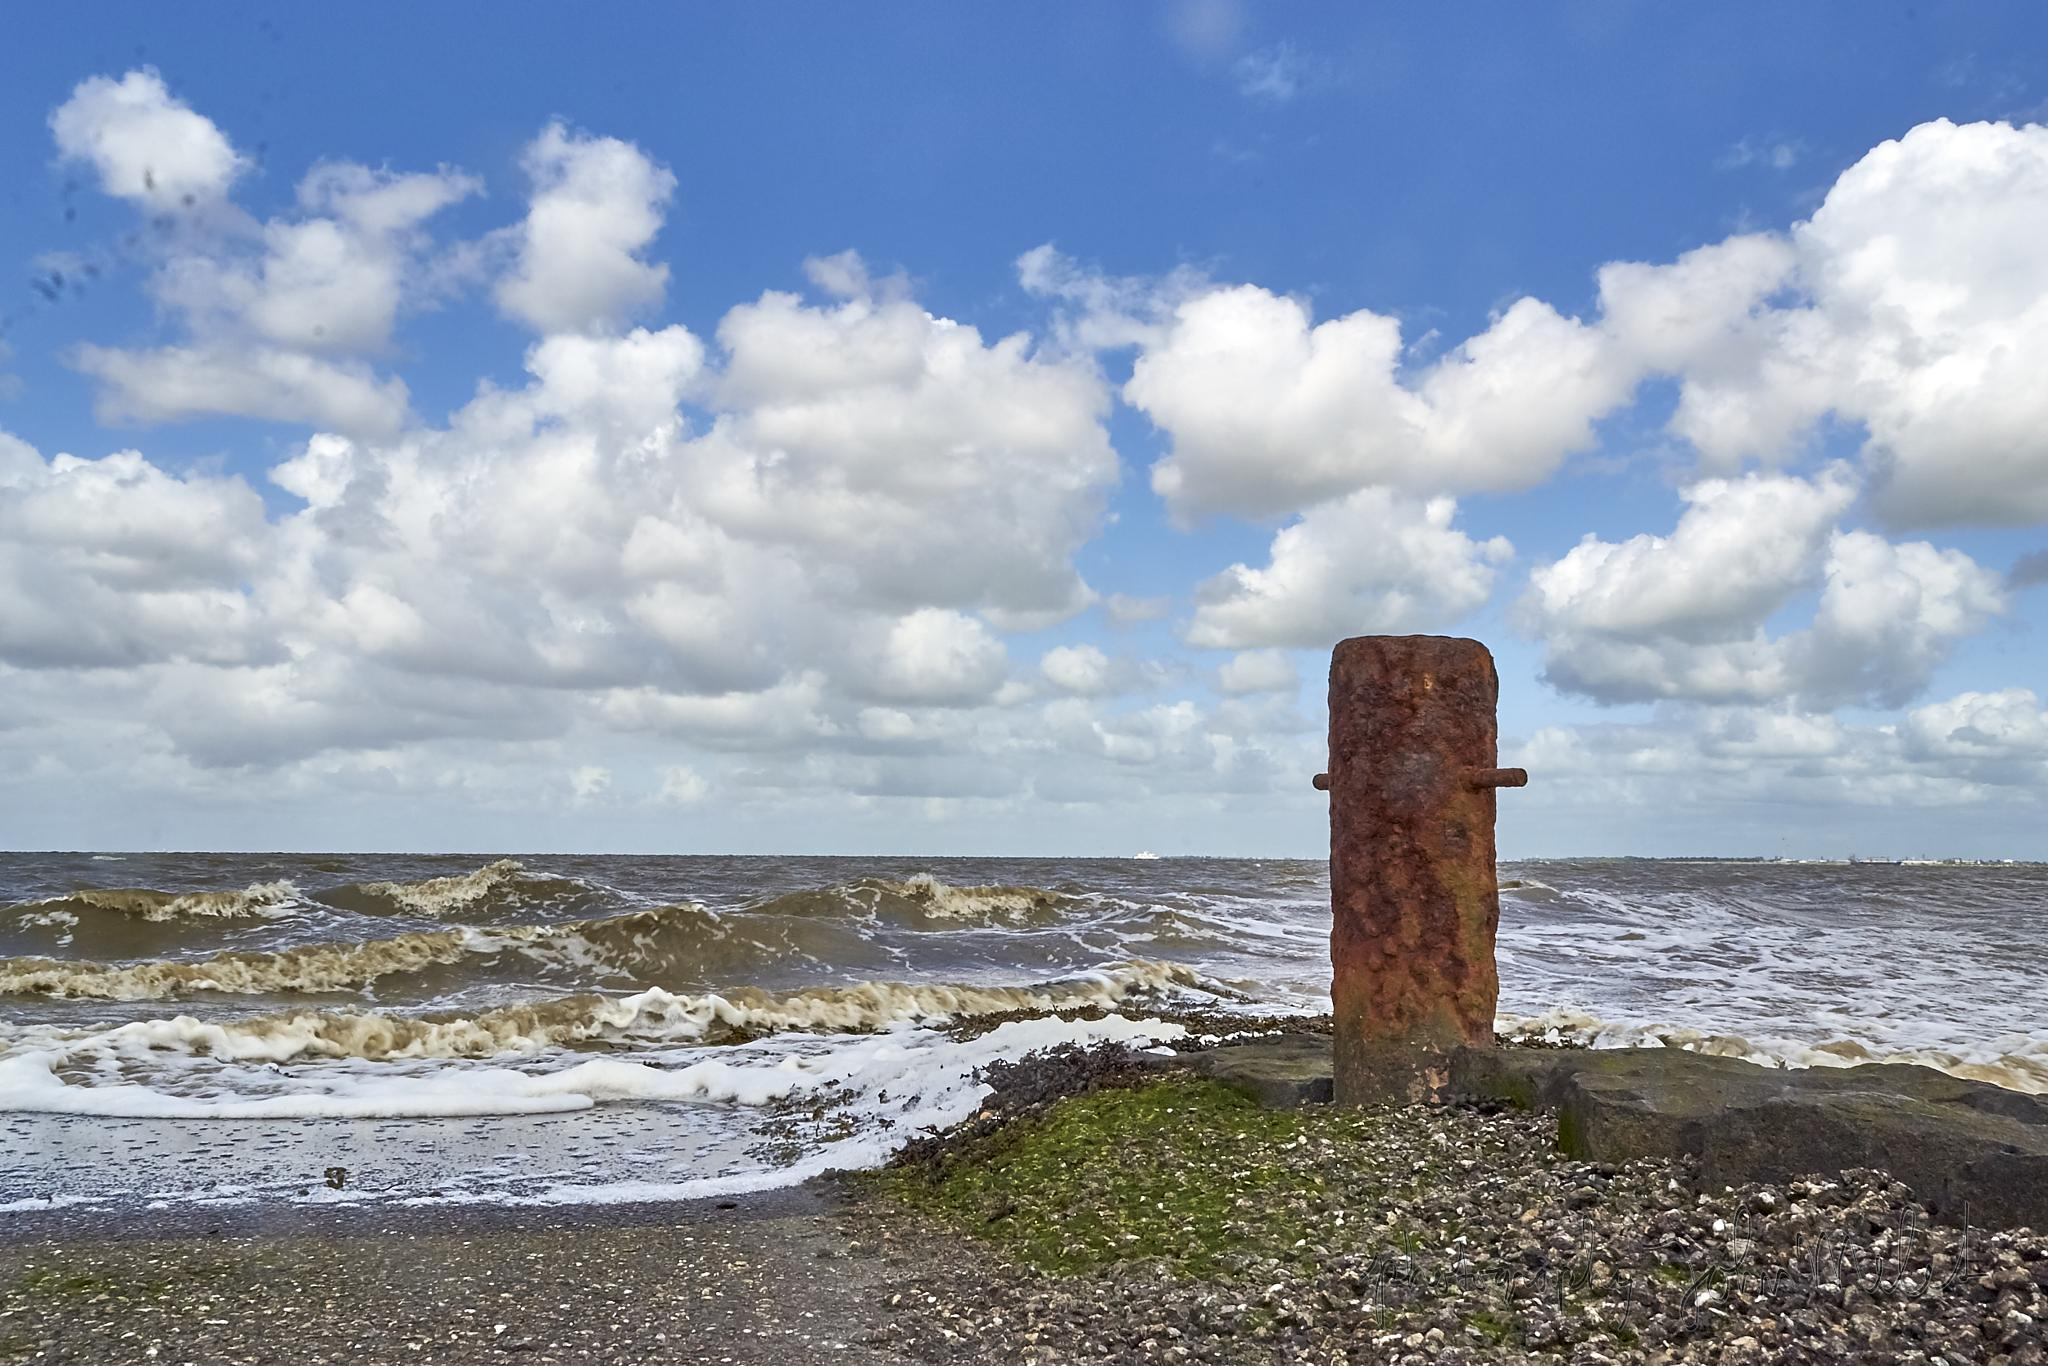 The coast of Delfzijl by John Melet